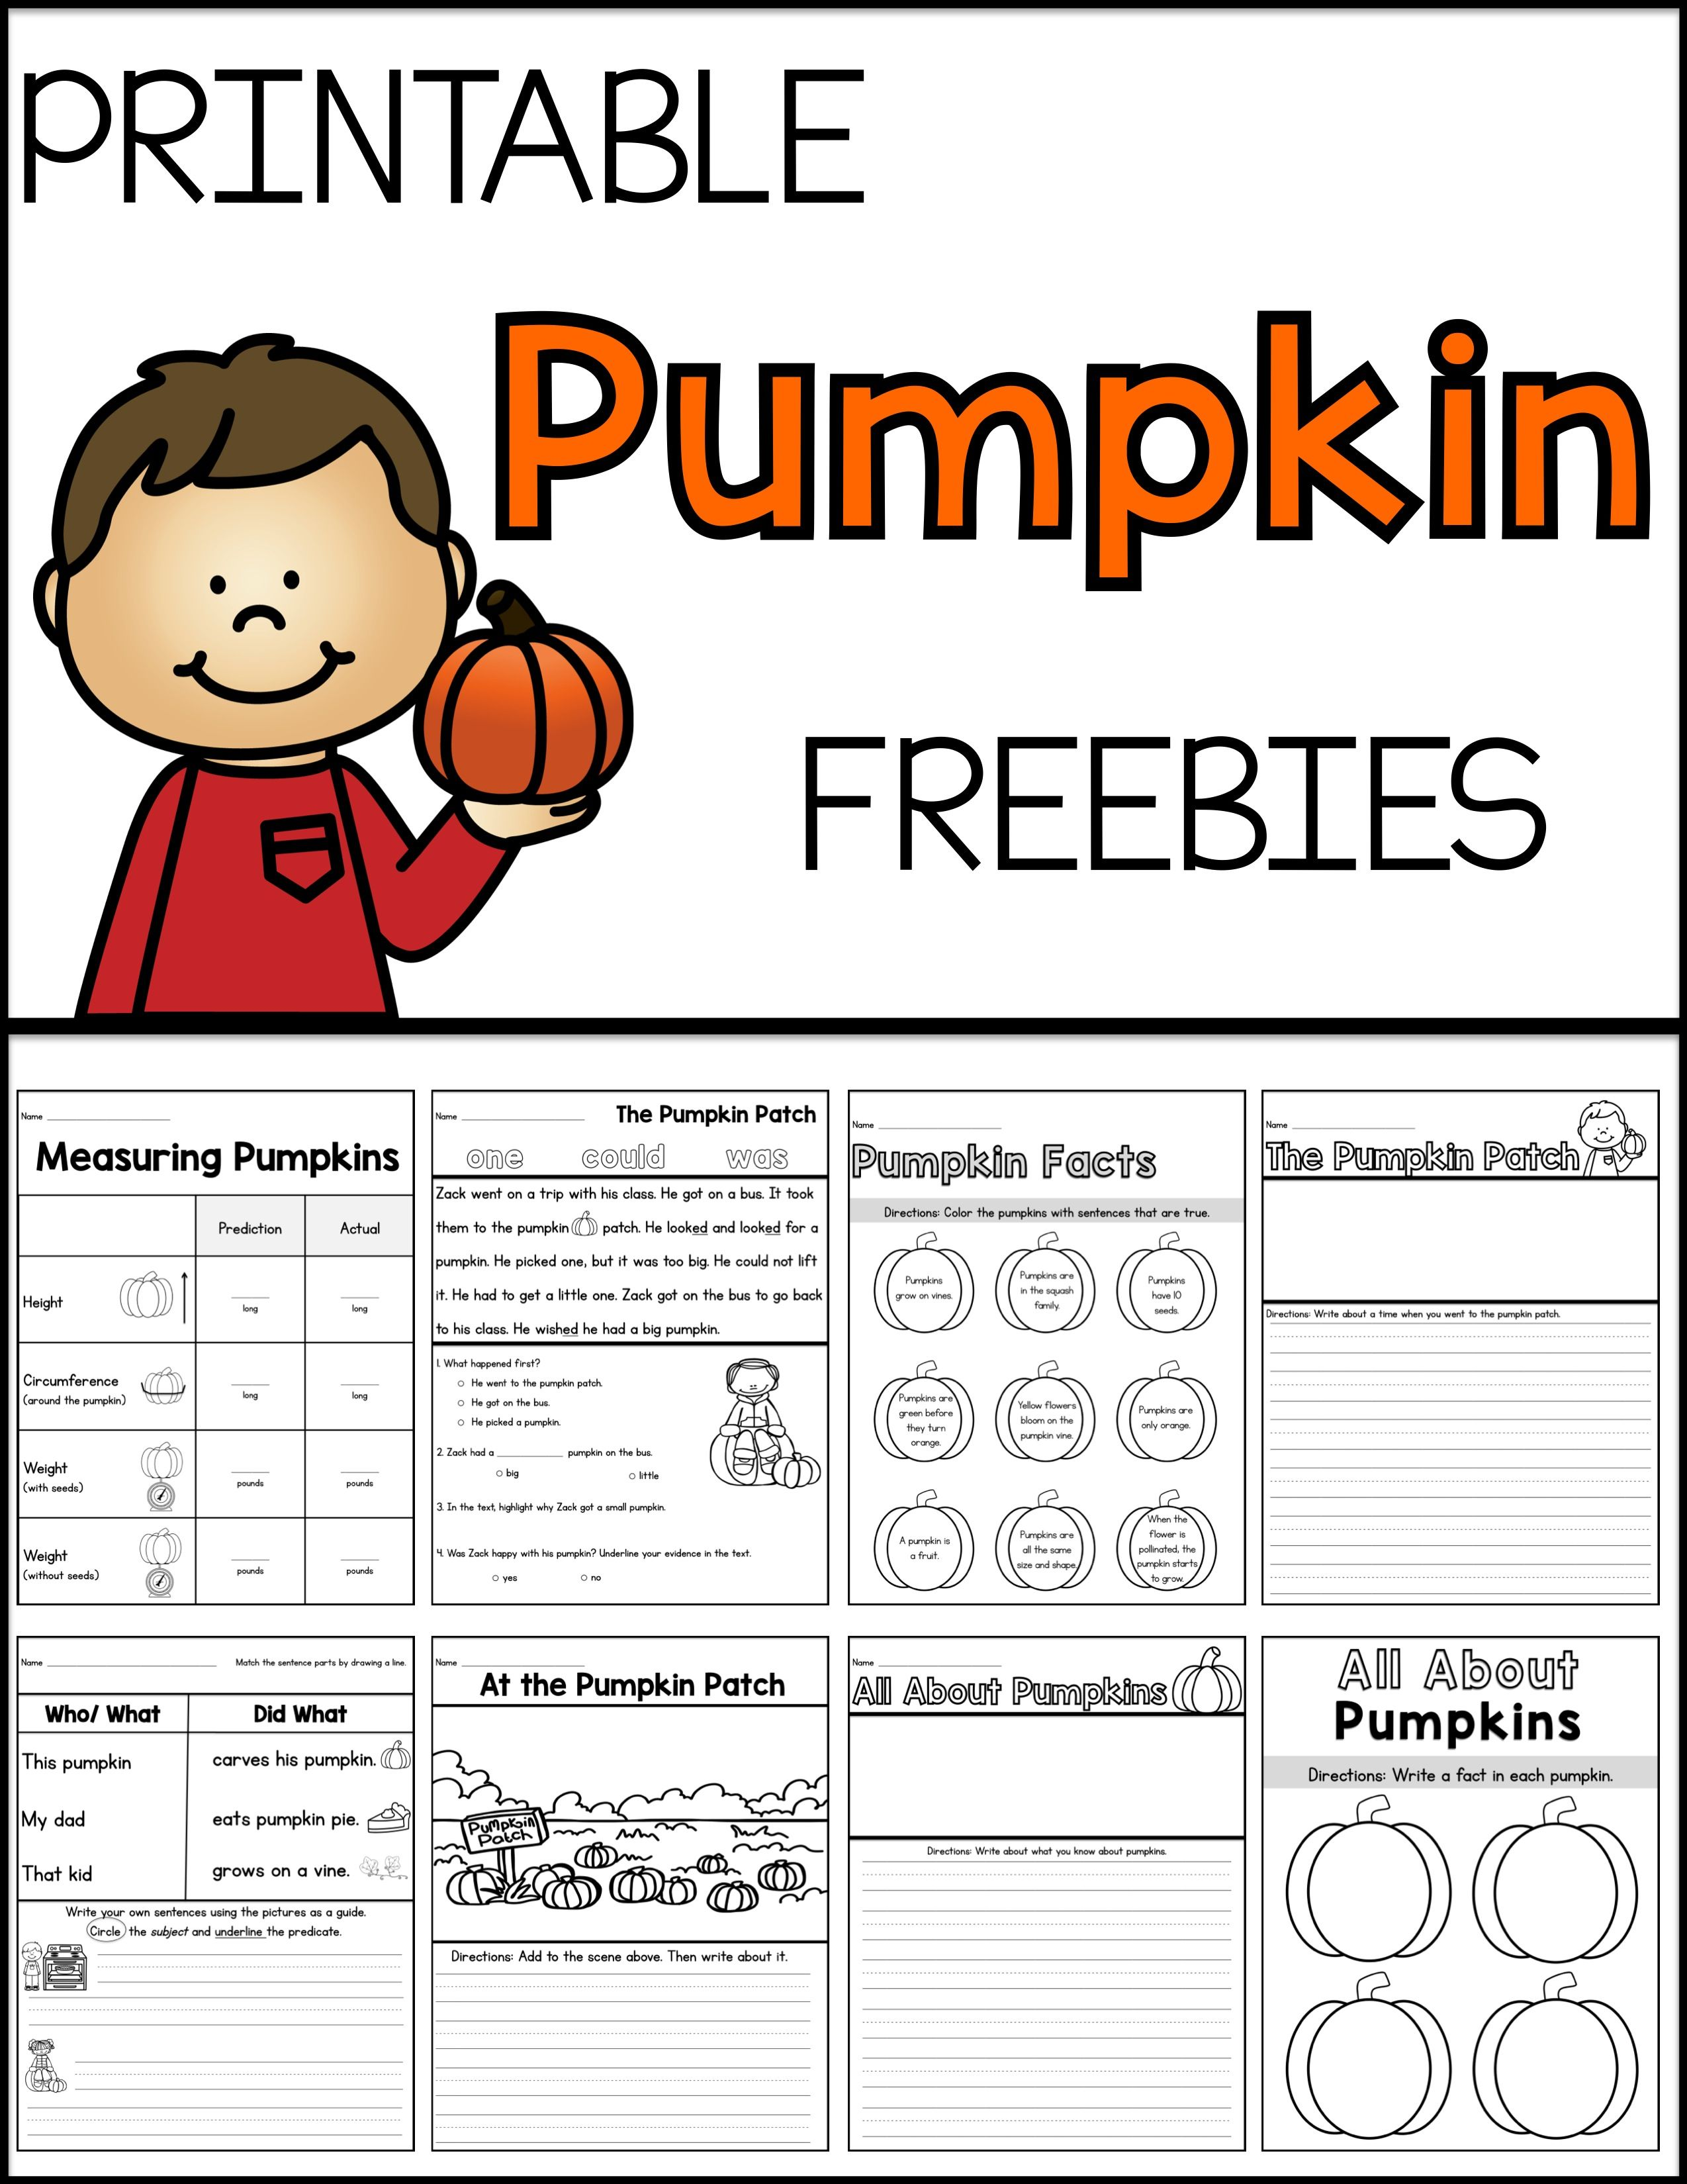 Pumpkin Freebies With Images